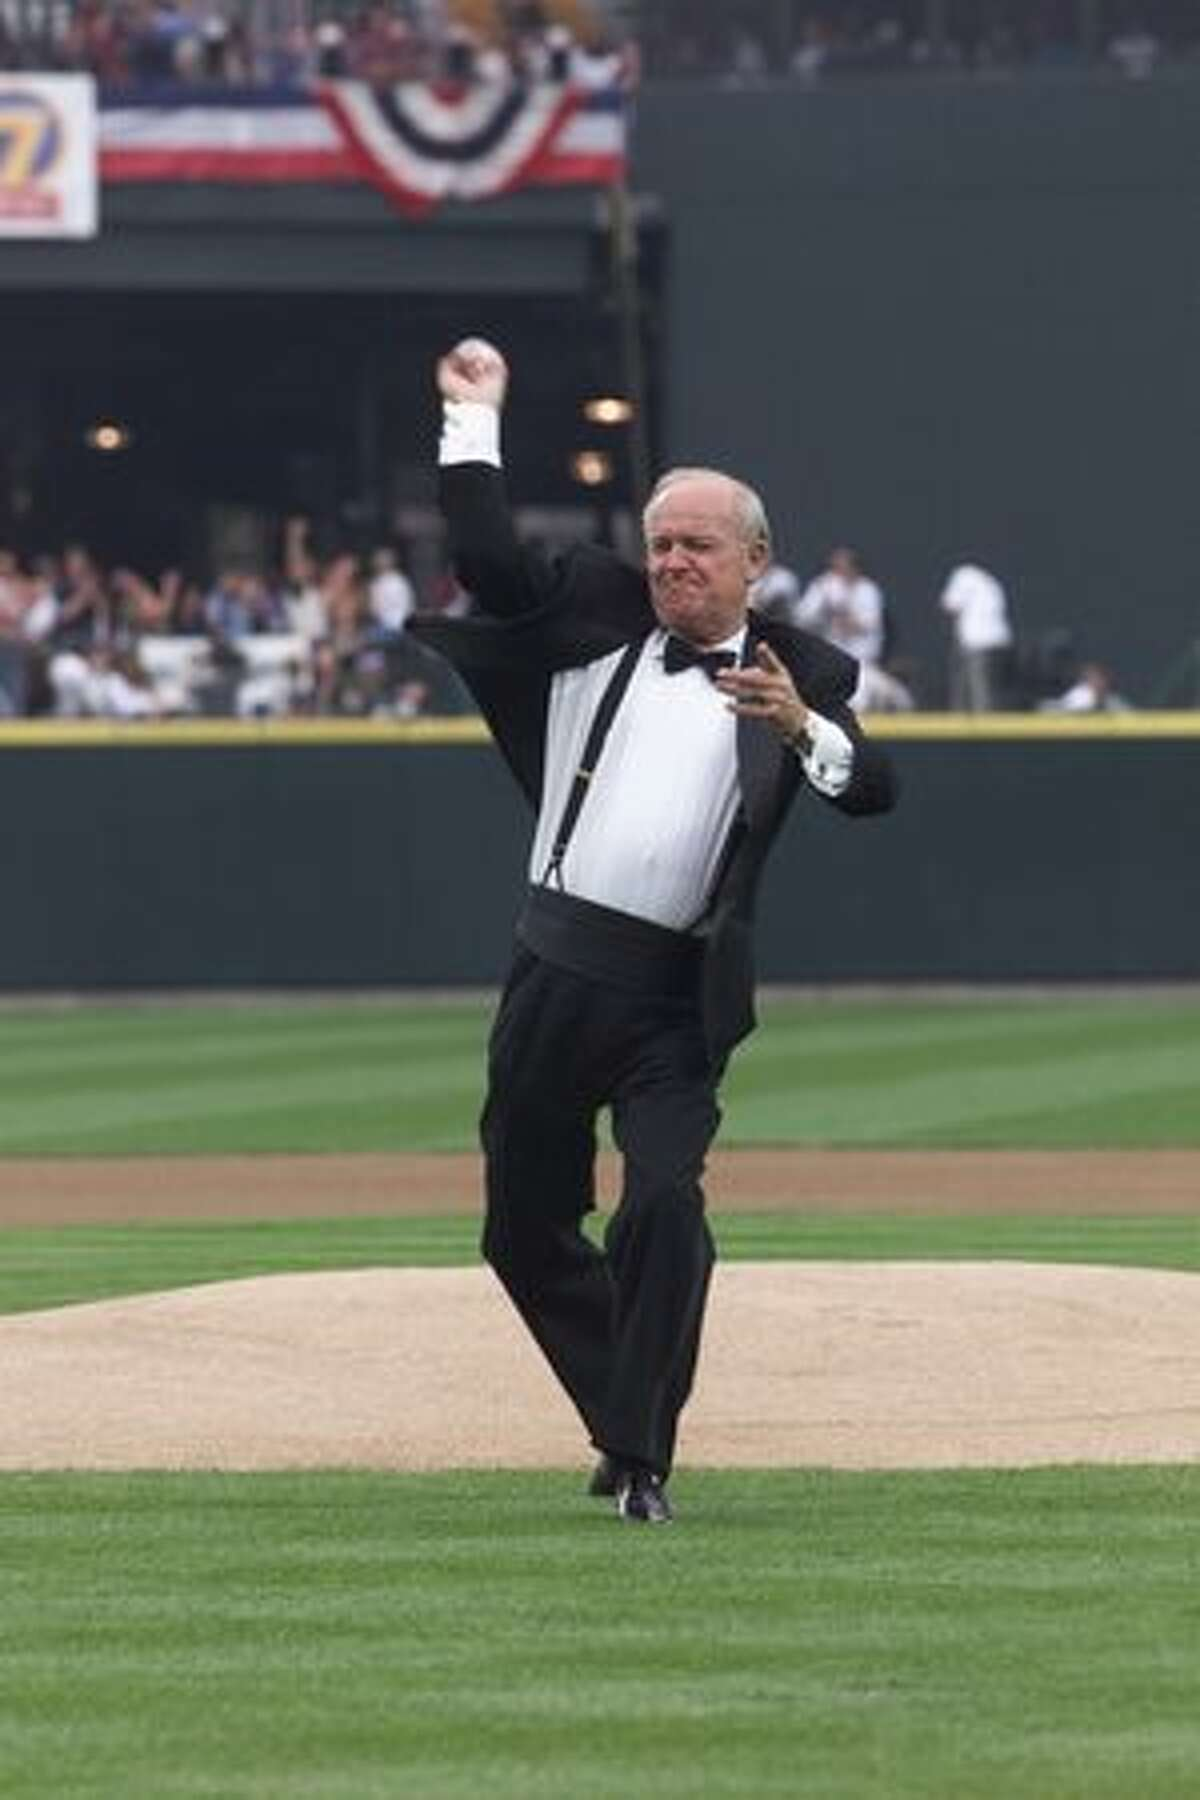 Dave Niehaus throws out the first pitch at the opening of Safeco Field, July 15, 1999. (Mike Urban/seattlepi.com file)